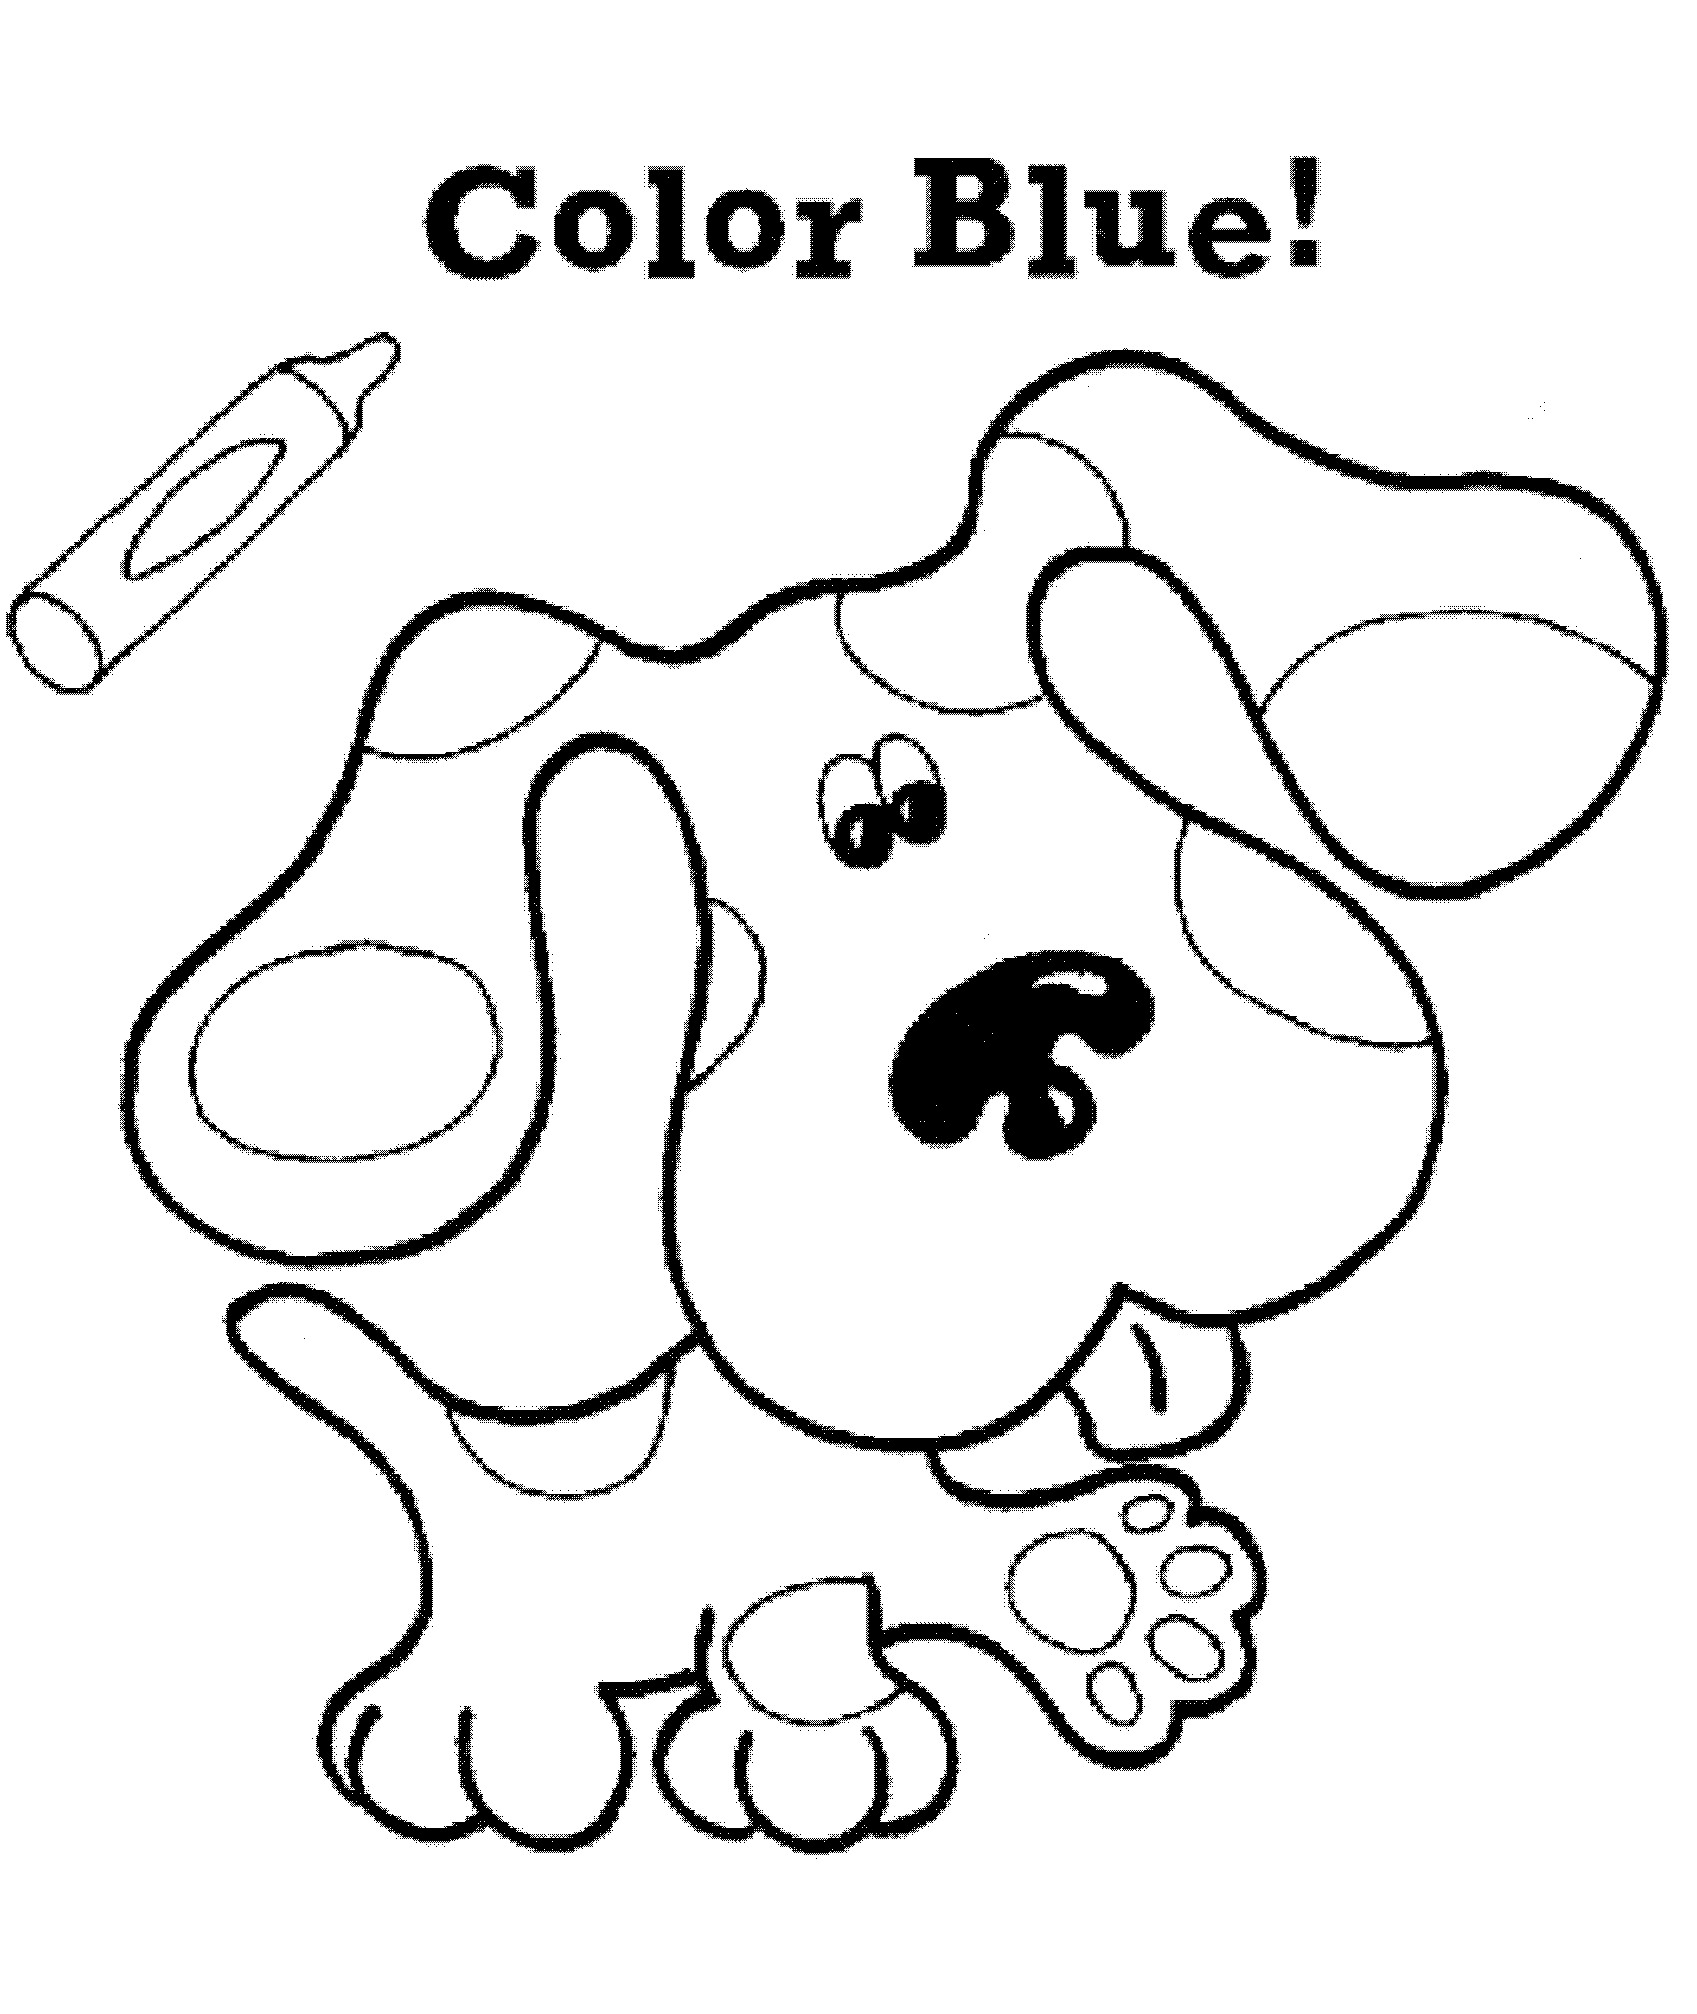 blues clues coloring book free printable blues clues coloring pages for kids book coloring clues blues